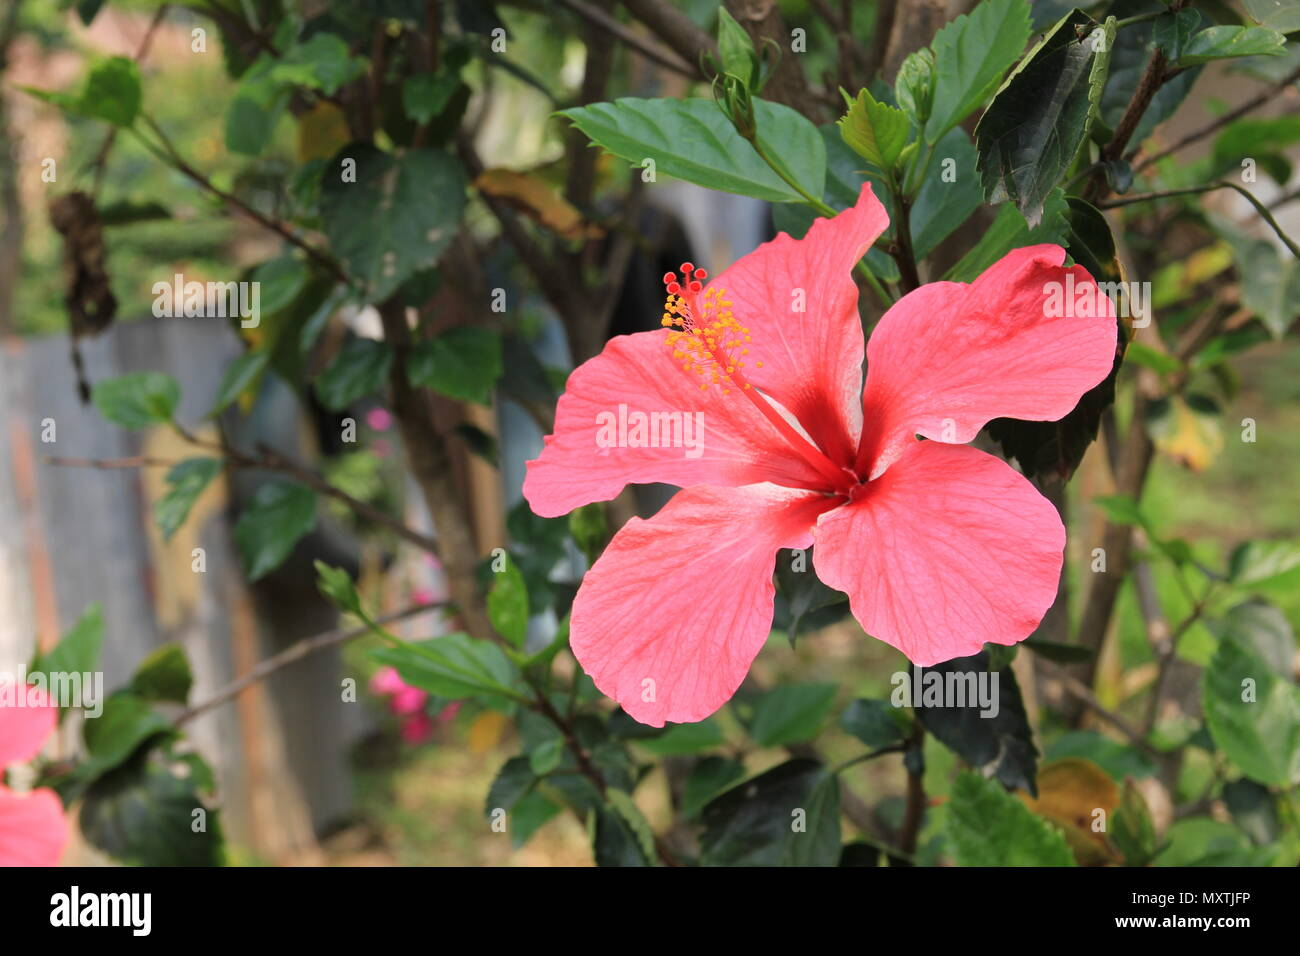 Pink hibiscus flower growing in Pokhara, Nepal. - Stock Image